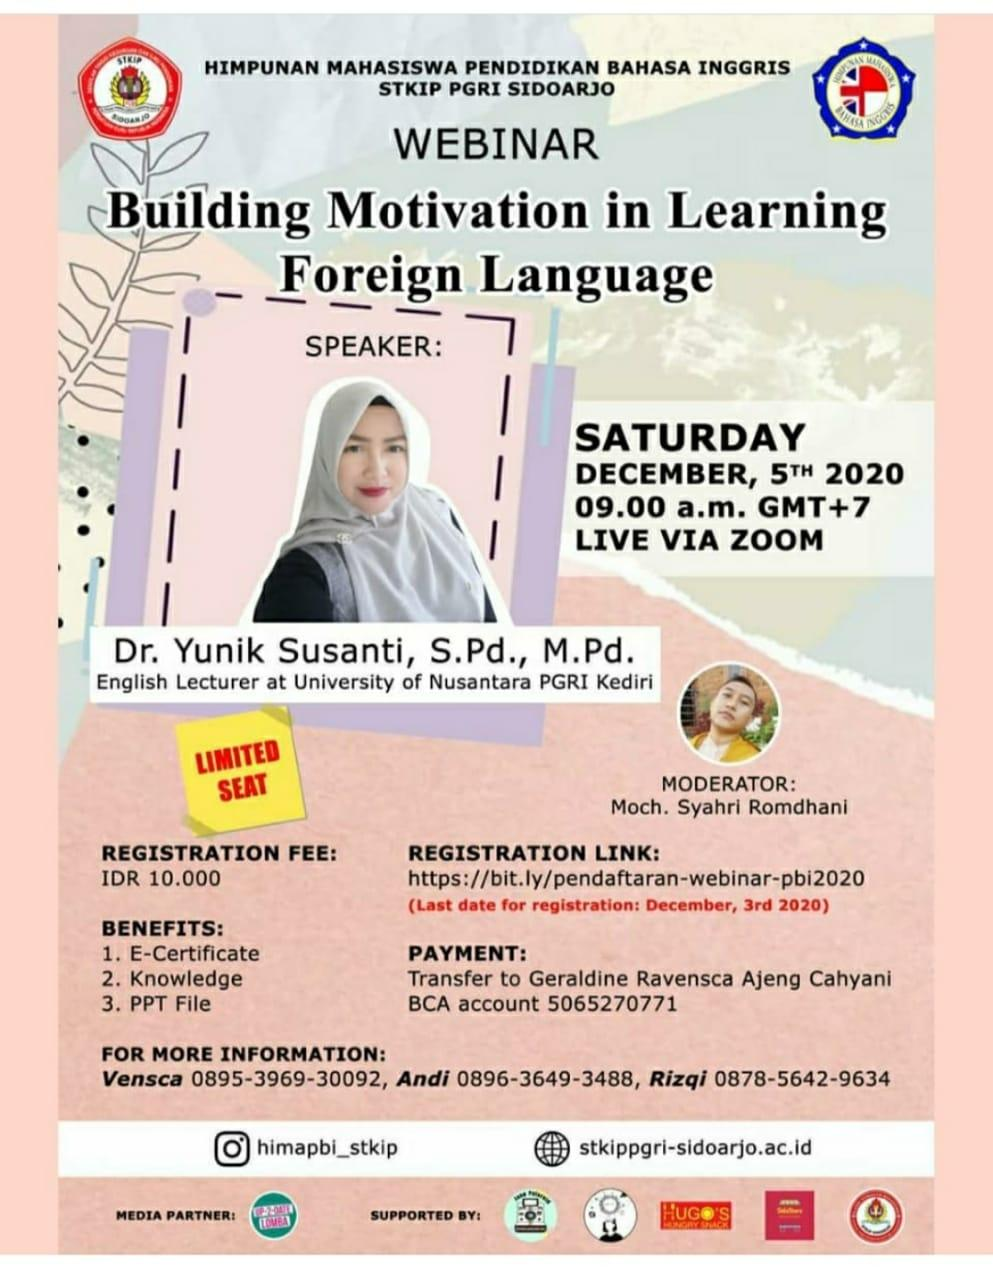 Building Motivation in Learning Foreign Language